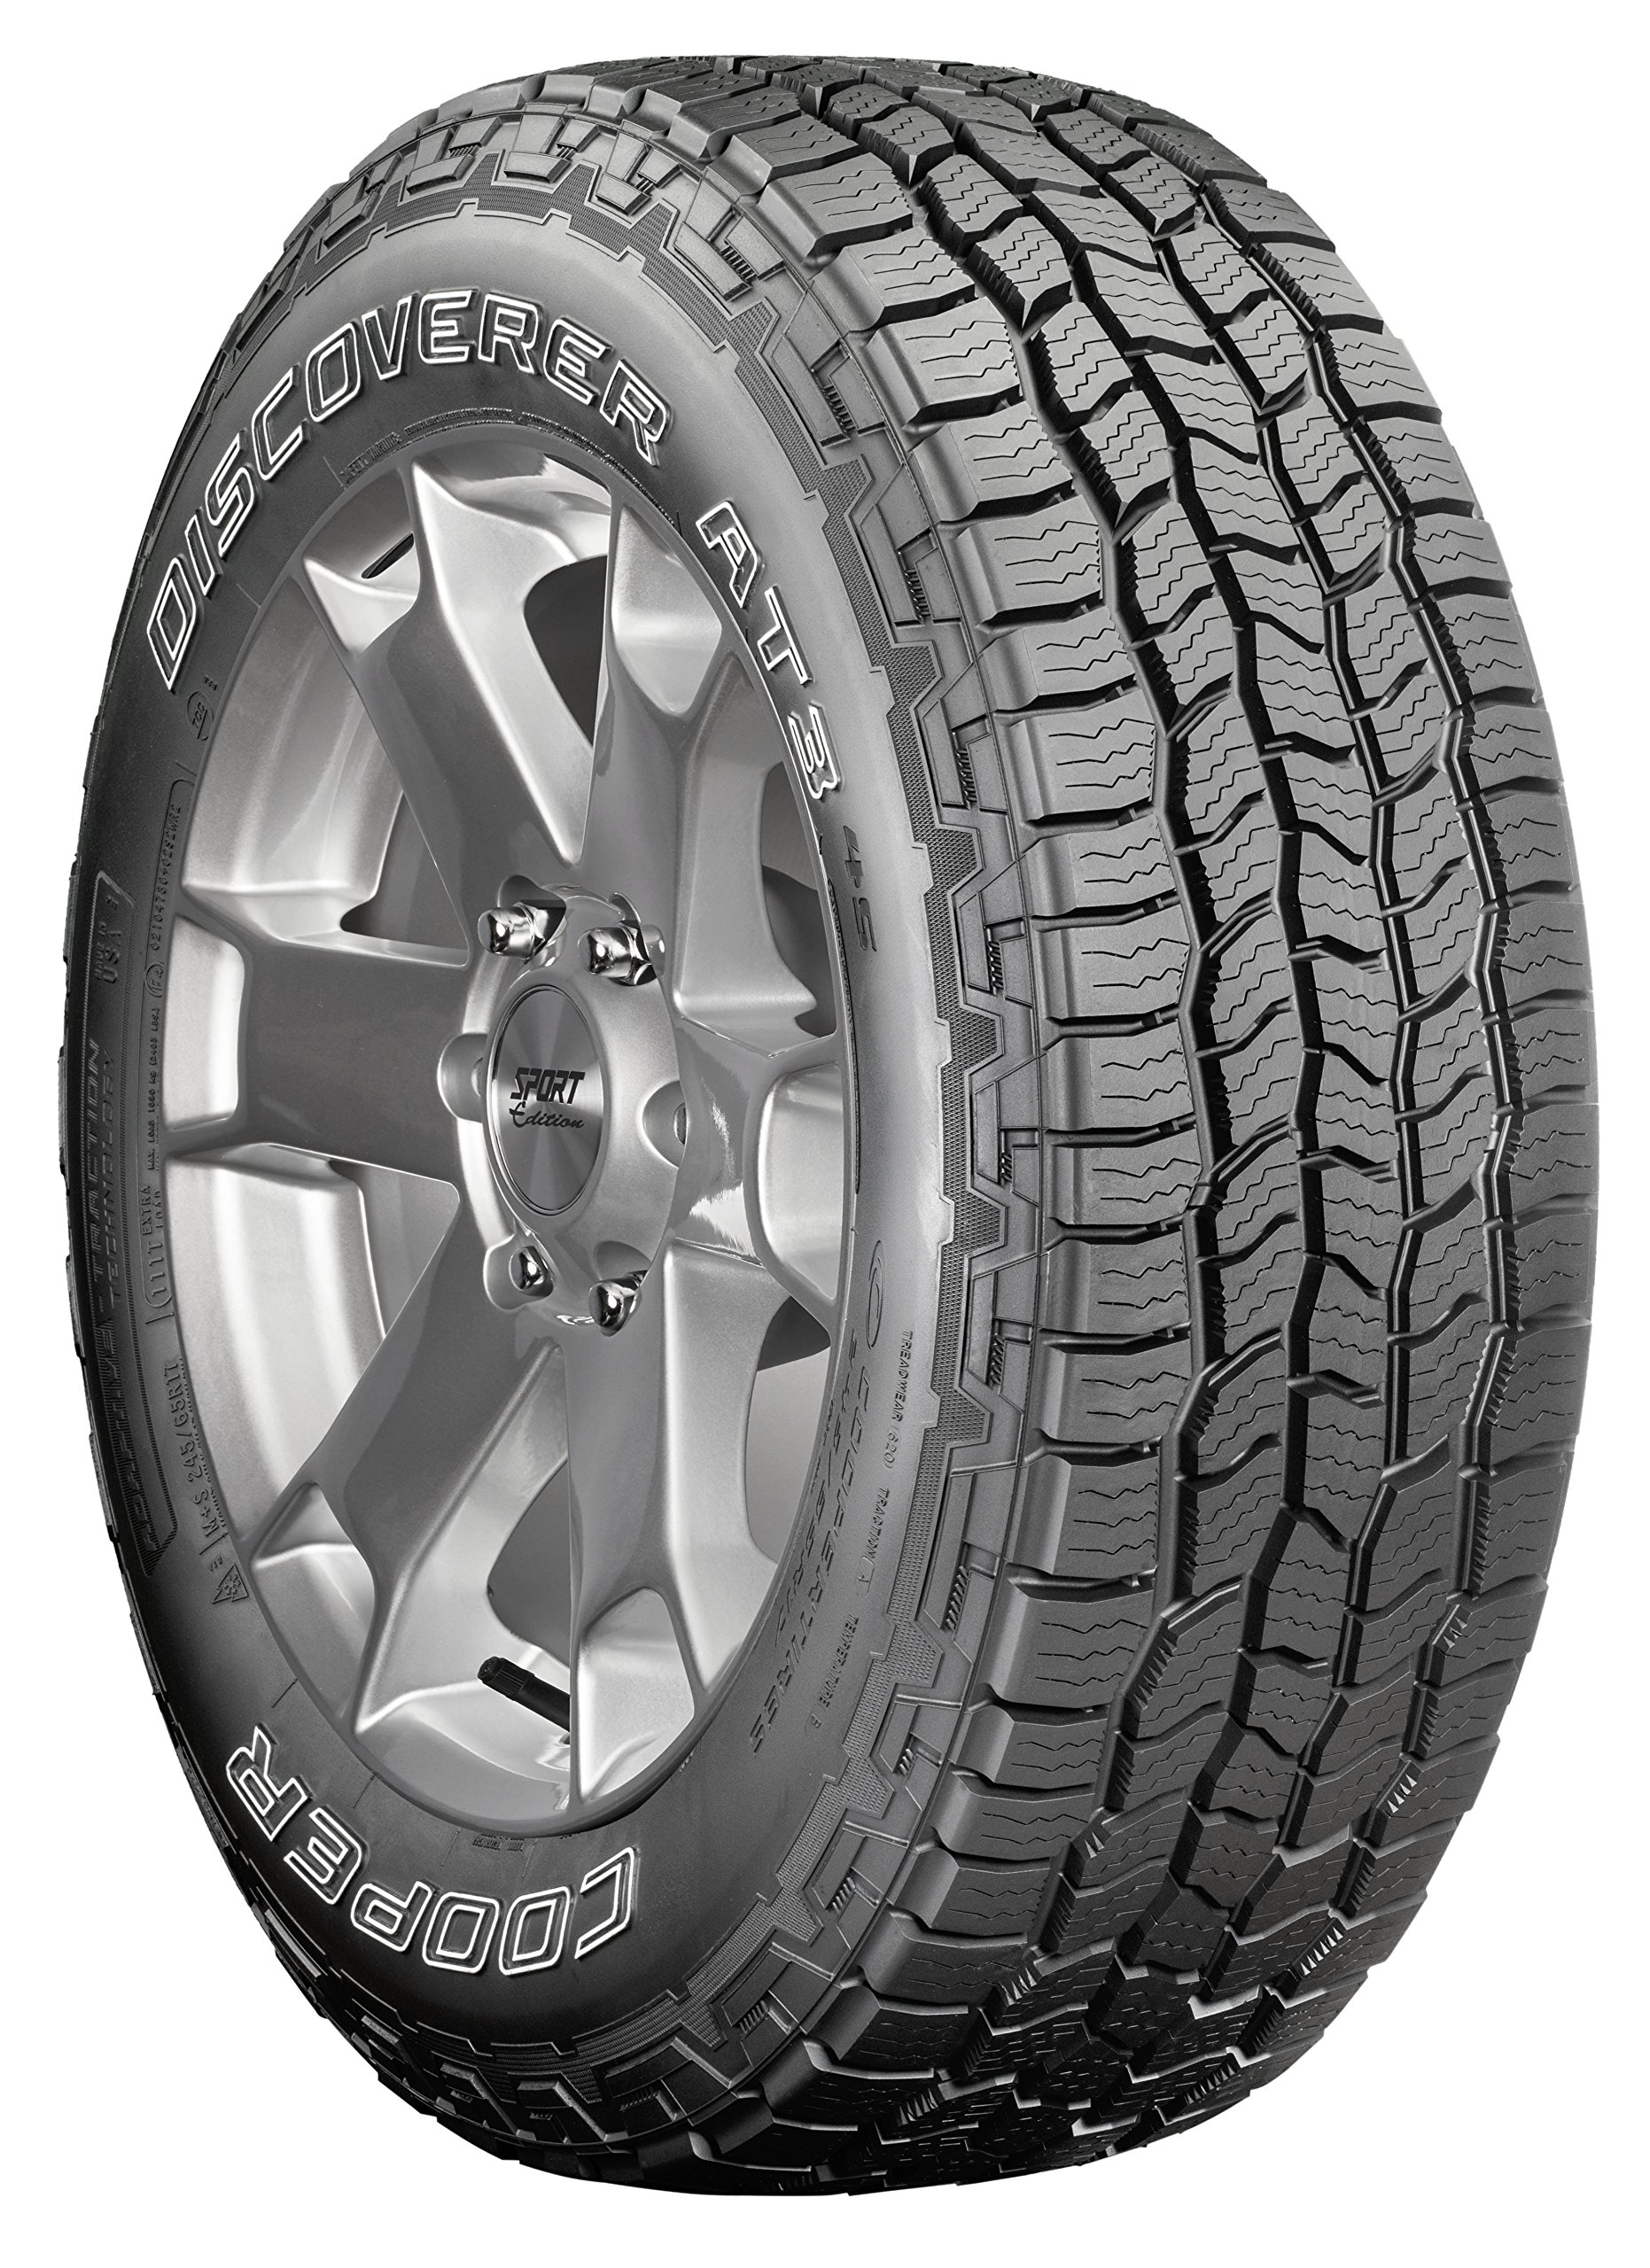 Cooper Discoverer A/T3 4S All-Terrain Radial Tire-215/70R16 100T